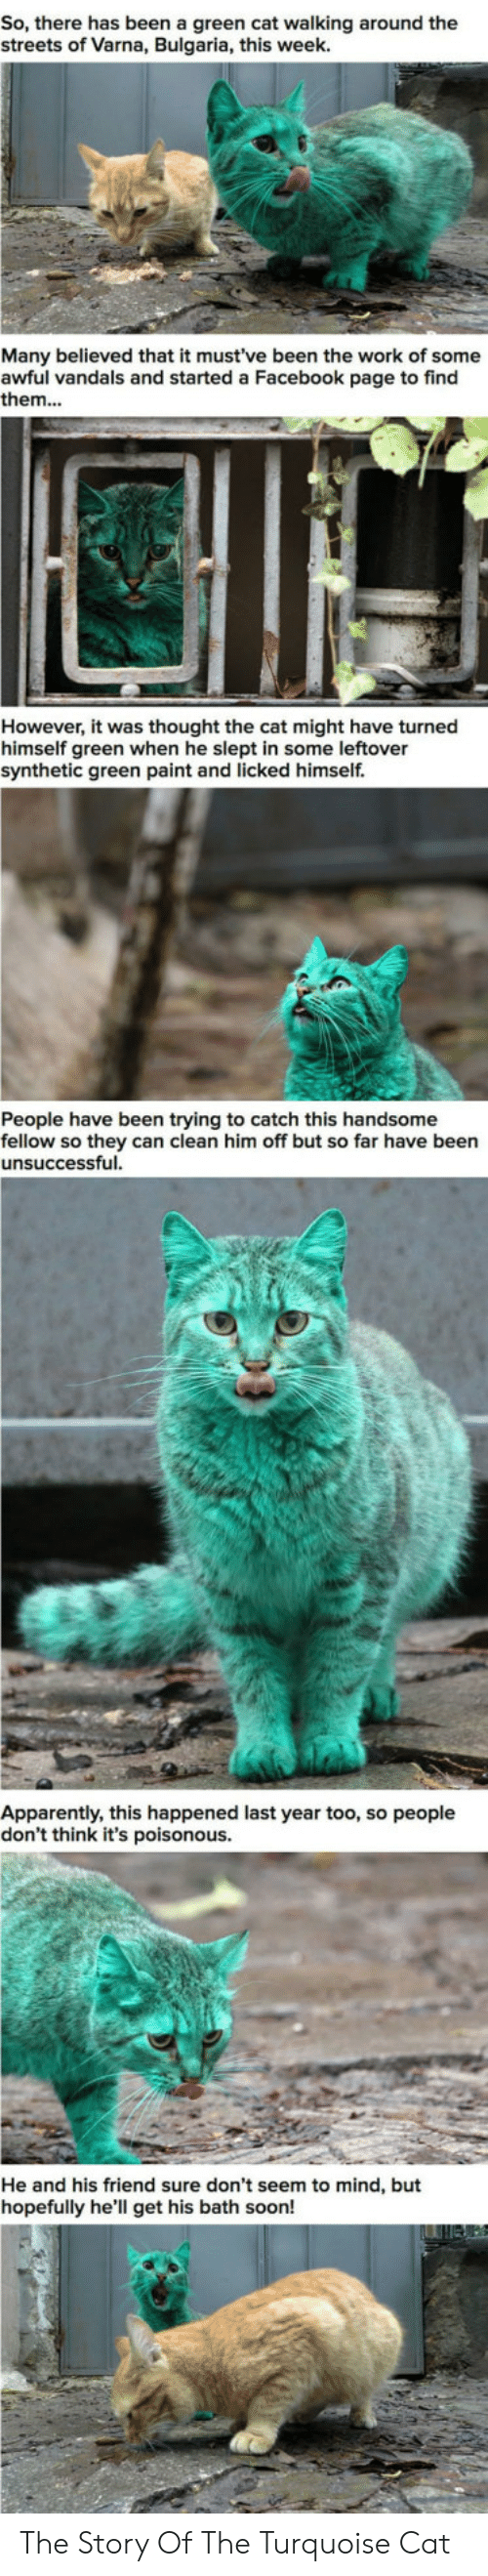 Apparently, Facebook, and Soon...: So, there has been a green cat walking around the  streets of Varna, Bulgaria, this week.  Many believed that it must've been the work of some  awful vandals and started a Facebook page to find  them...  However, it was thought the cat might have turned  himself green when he slept in some leftover  synthetic green paint and licked himself.  People have been trying to catch this handsome  fellow so they can clean him off but so far have been  unsuccessful  Apparently, this happened last year too, so people  don't think it's poisonous.  He and his friend sure don't seem to mind, but  hopefully he'll get his bath soon! The Story Of The Turquoise Cat